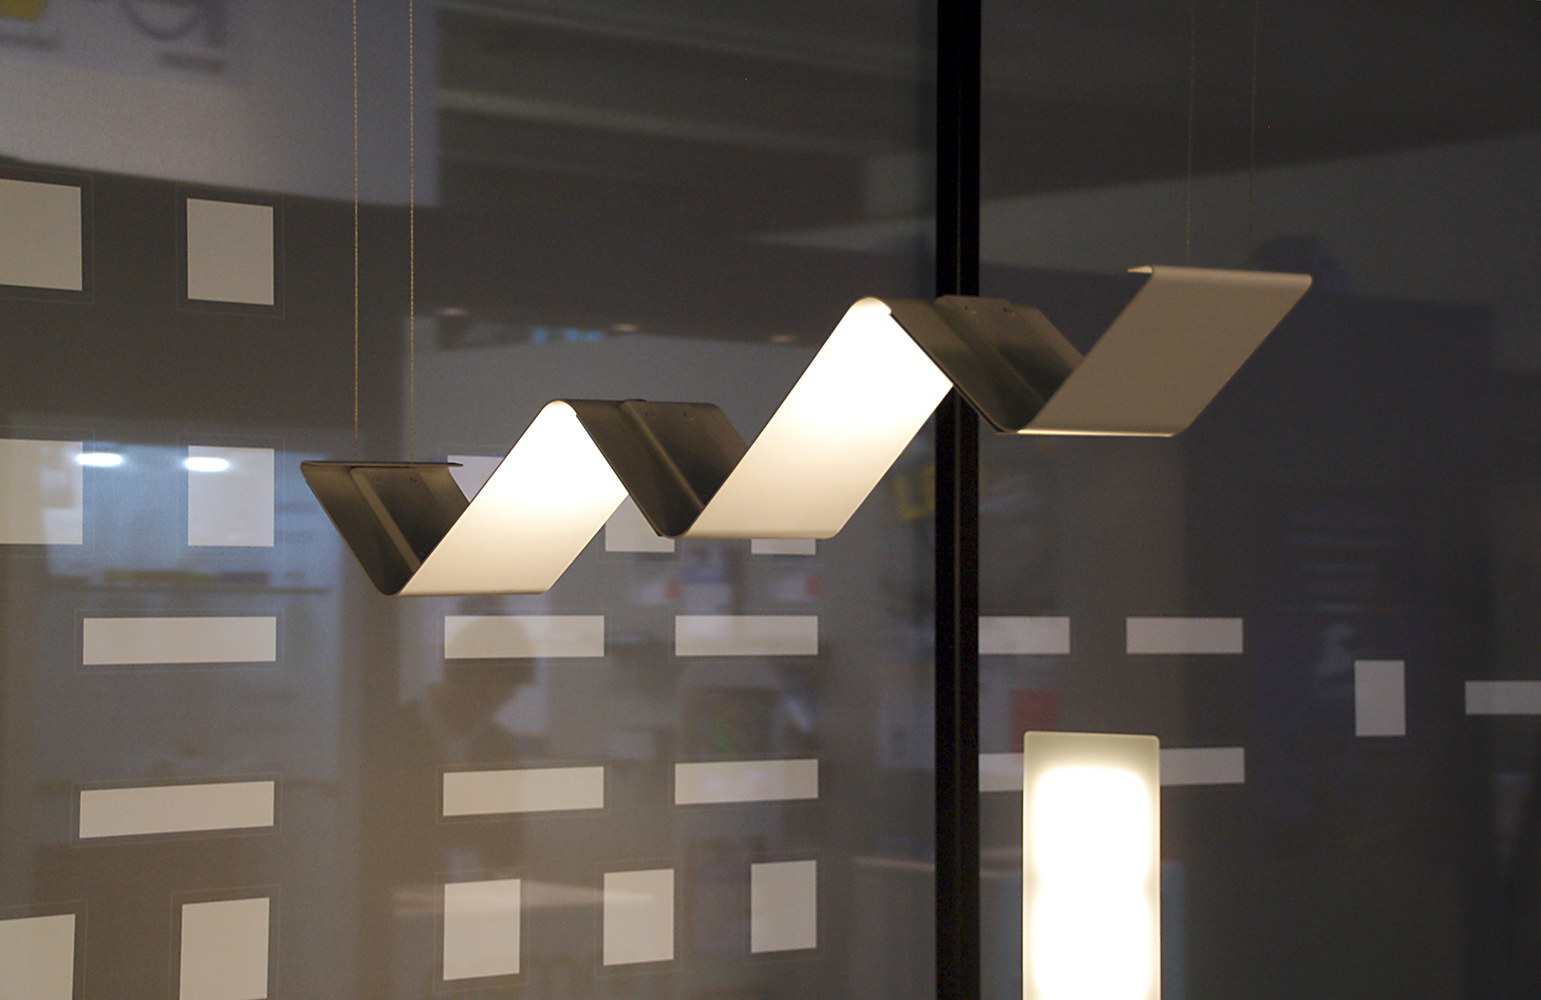 Limit pendant in an office lighting application, close-up of the OLED light reflected on the zigzag panels.